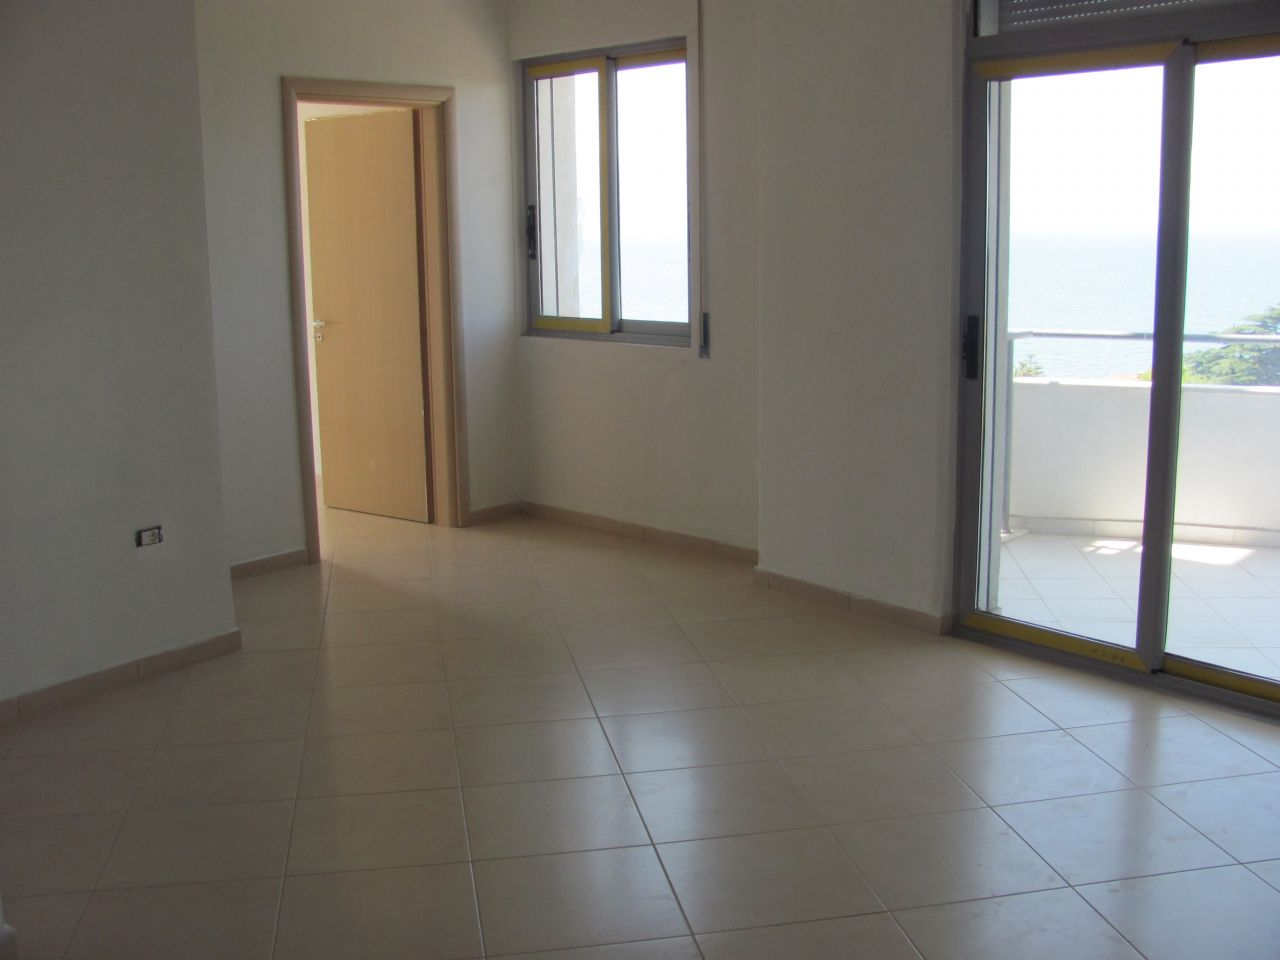 Finished apartments for sale in Vlora located in very good position with wonderful sea view.